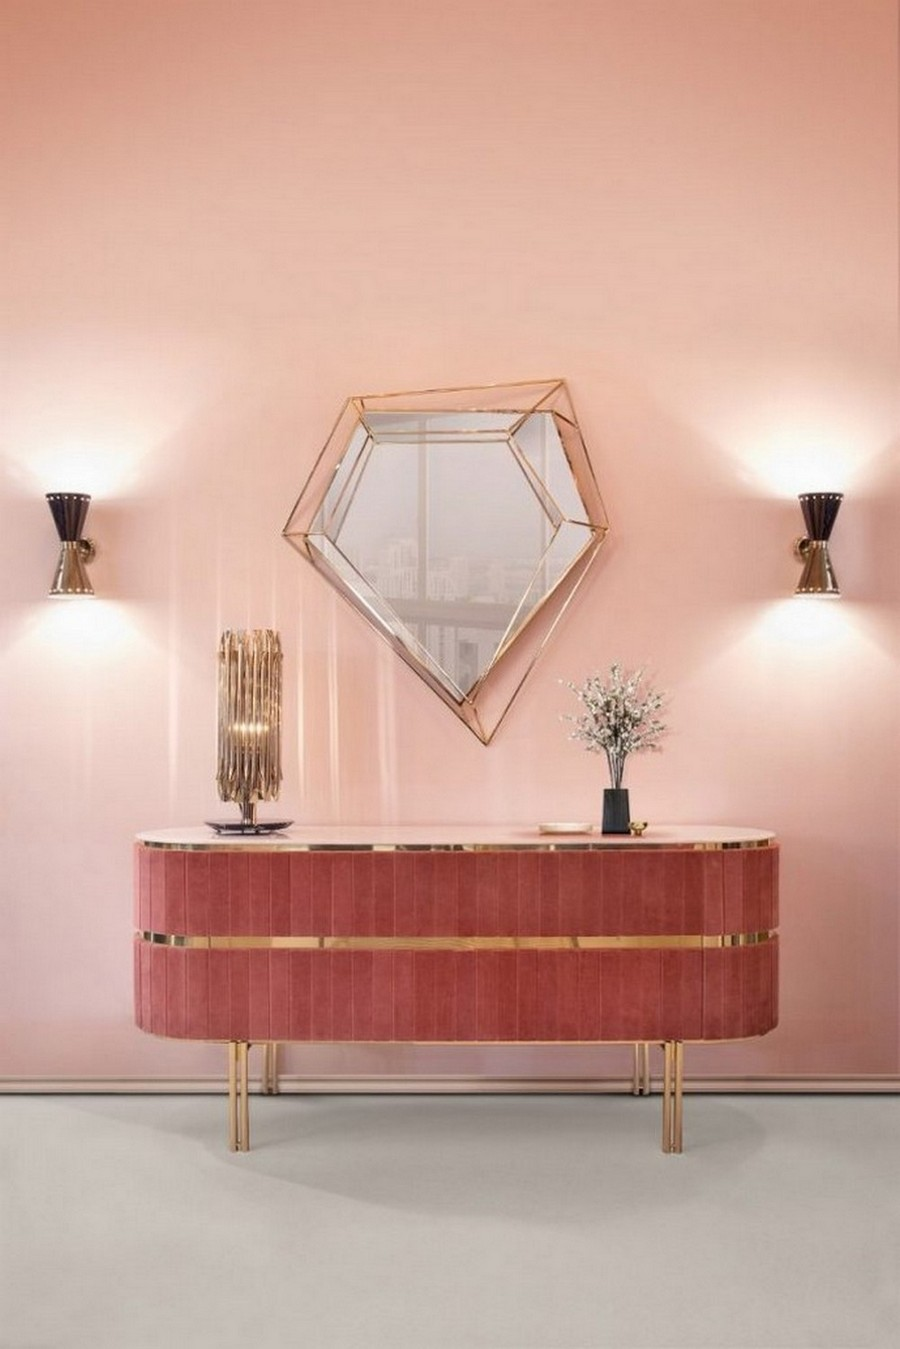 Decorate With Benjamin Moore's Color Of The Year For 2020 benjamin moore Decorate With Benjamin Moore's Color Of The Year For 2020 Decorate With Benjamin Moores Color Of The Year For 2020 3